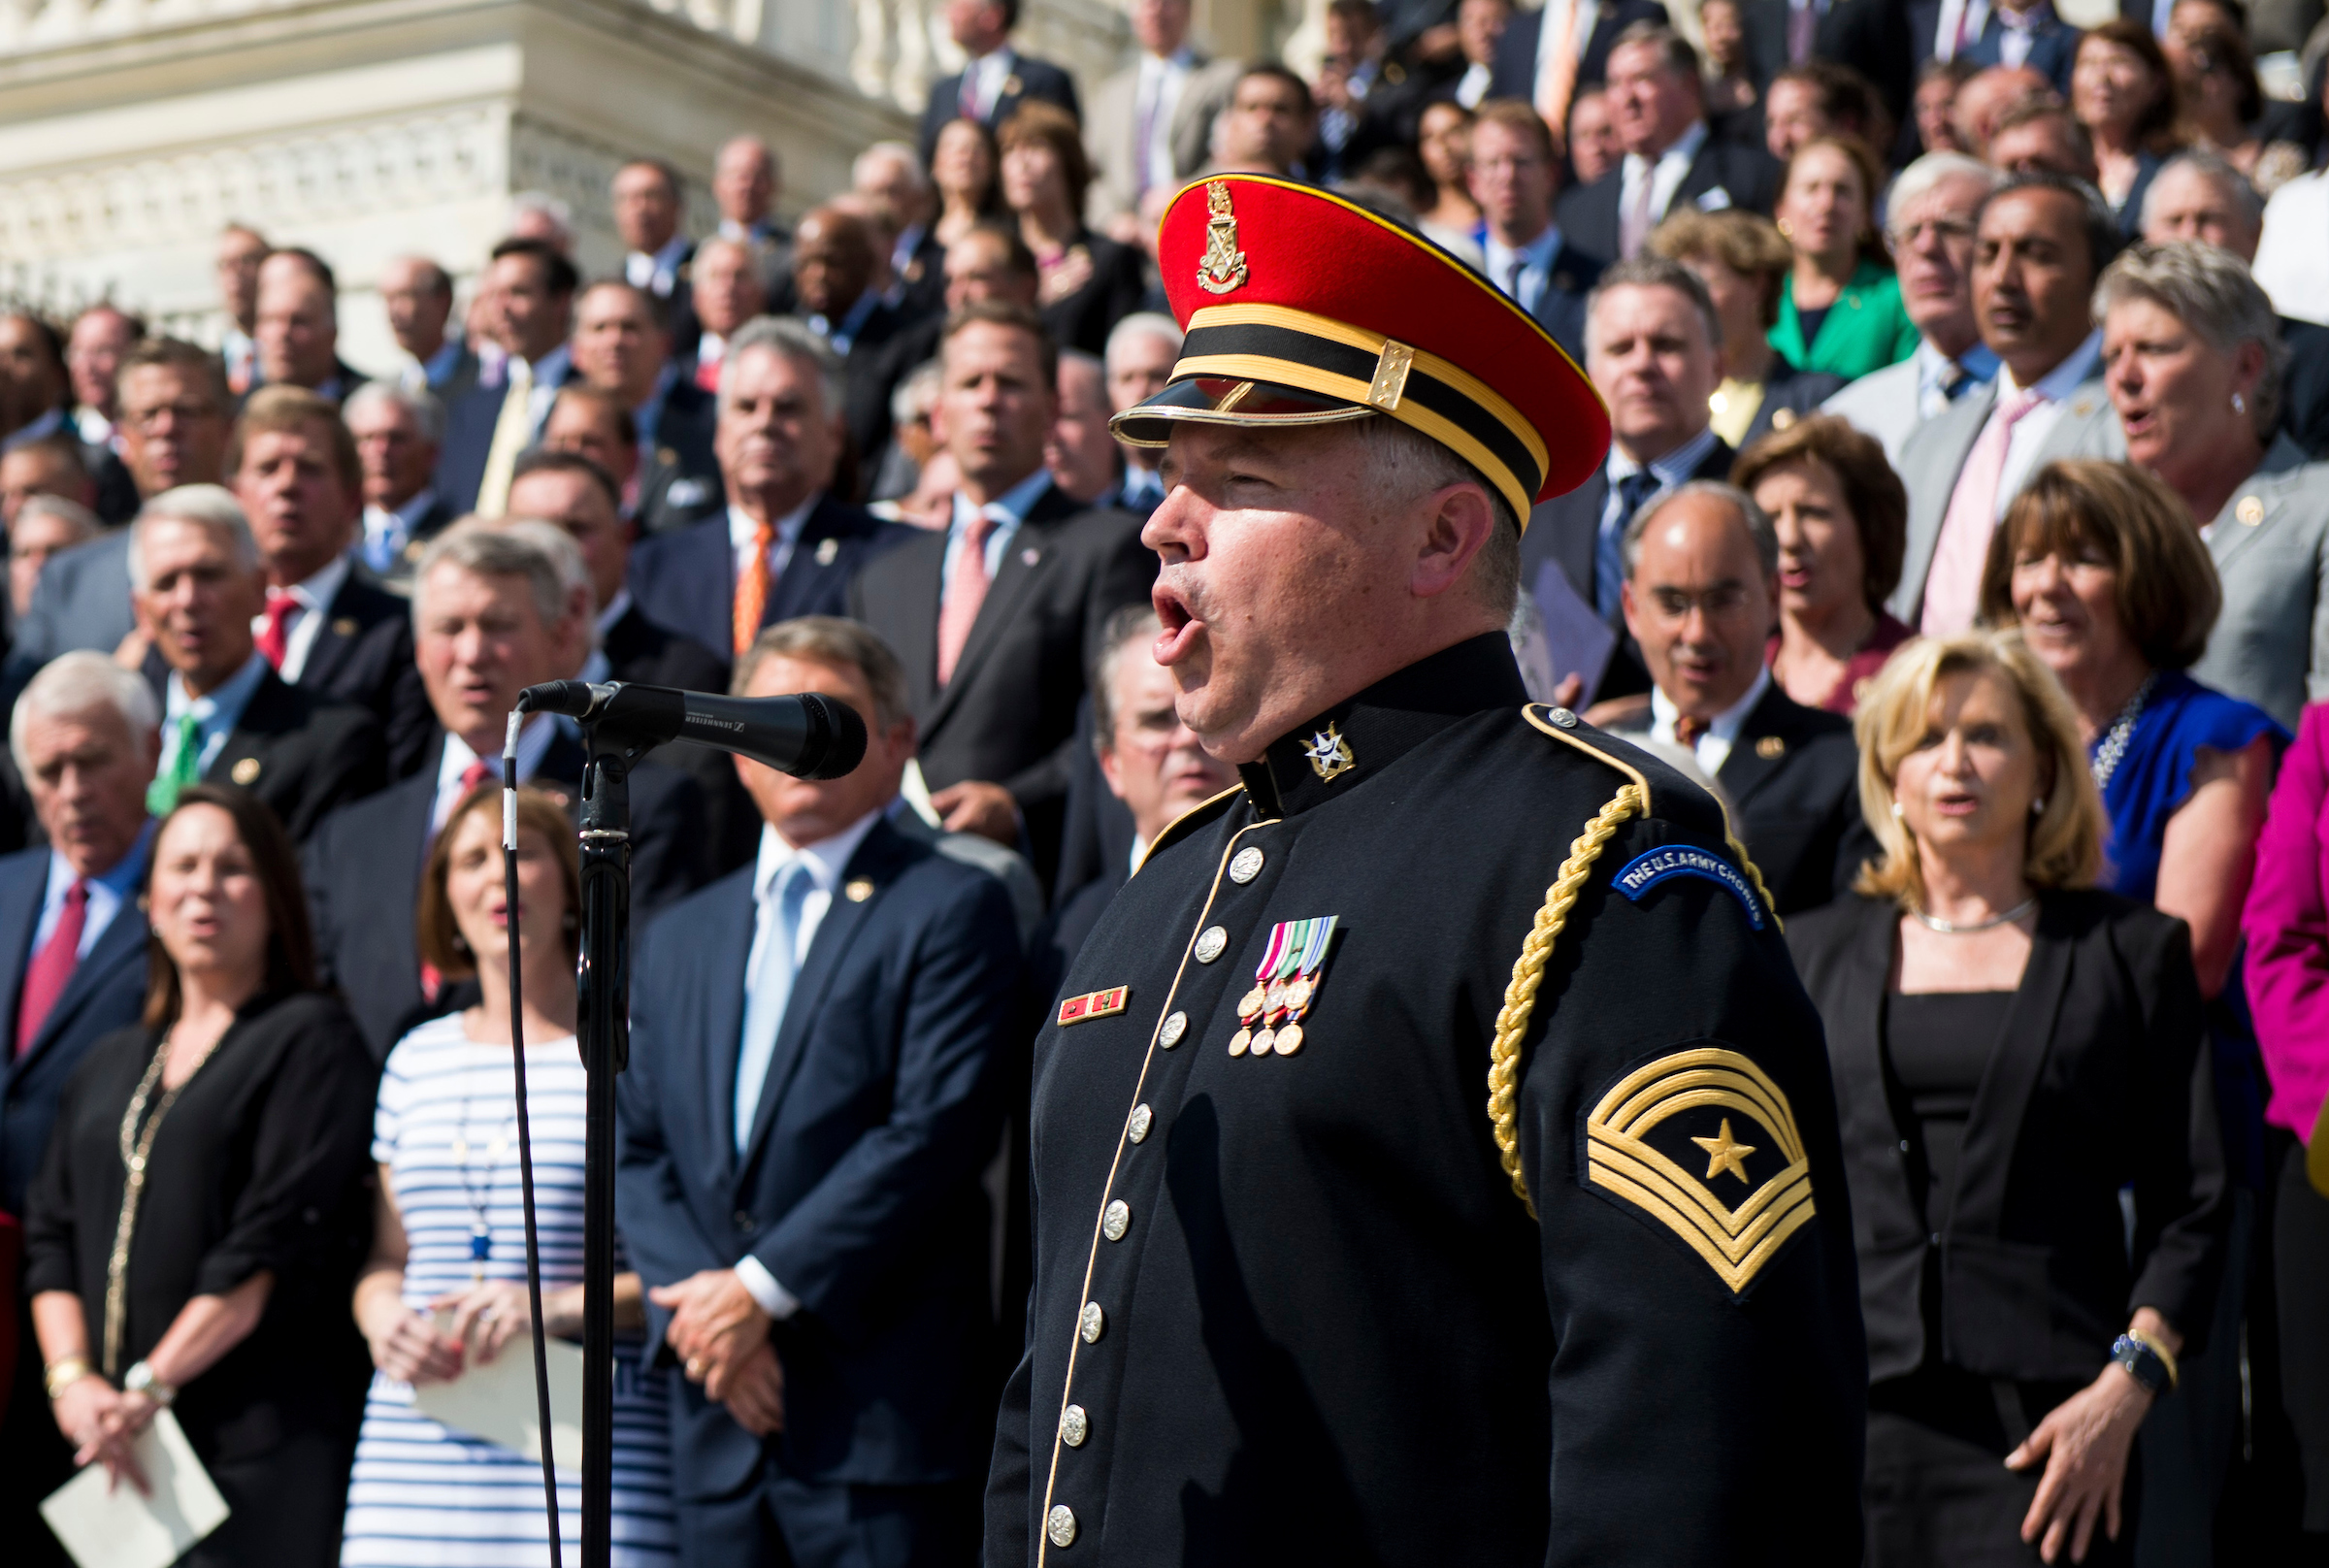 A member of the U.S. Army Chorus leads members of Congress in the singing of God Bless America at the conclusion of the ceremony on the House steps to mark the 15th anniversary of 9/11on Friday, Sept. 9, 2016. (Bill Clark/CQ Roll Call)